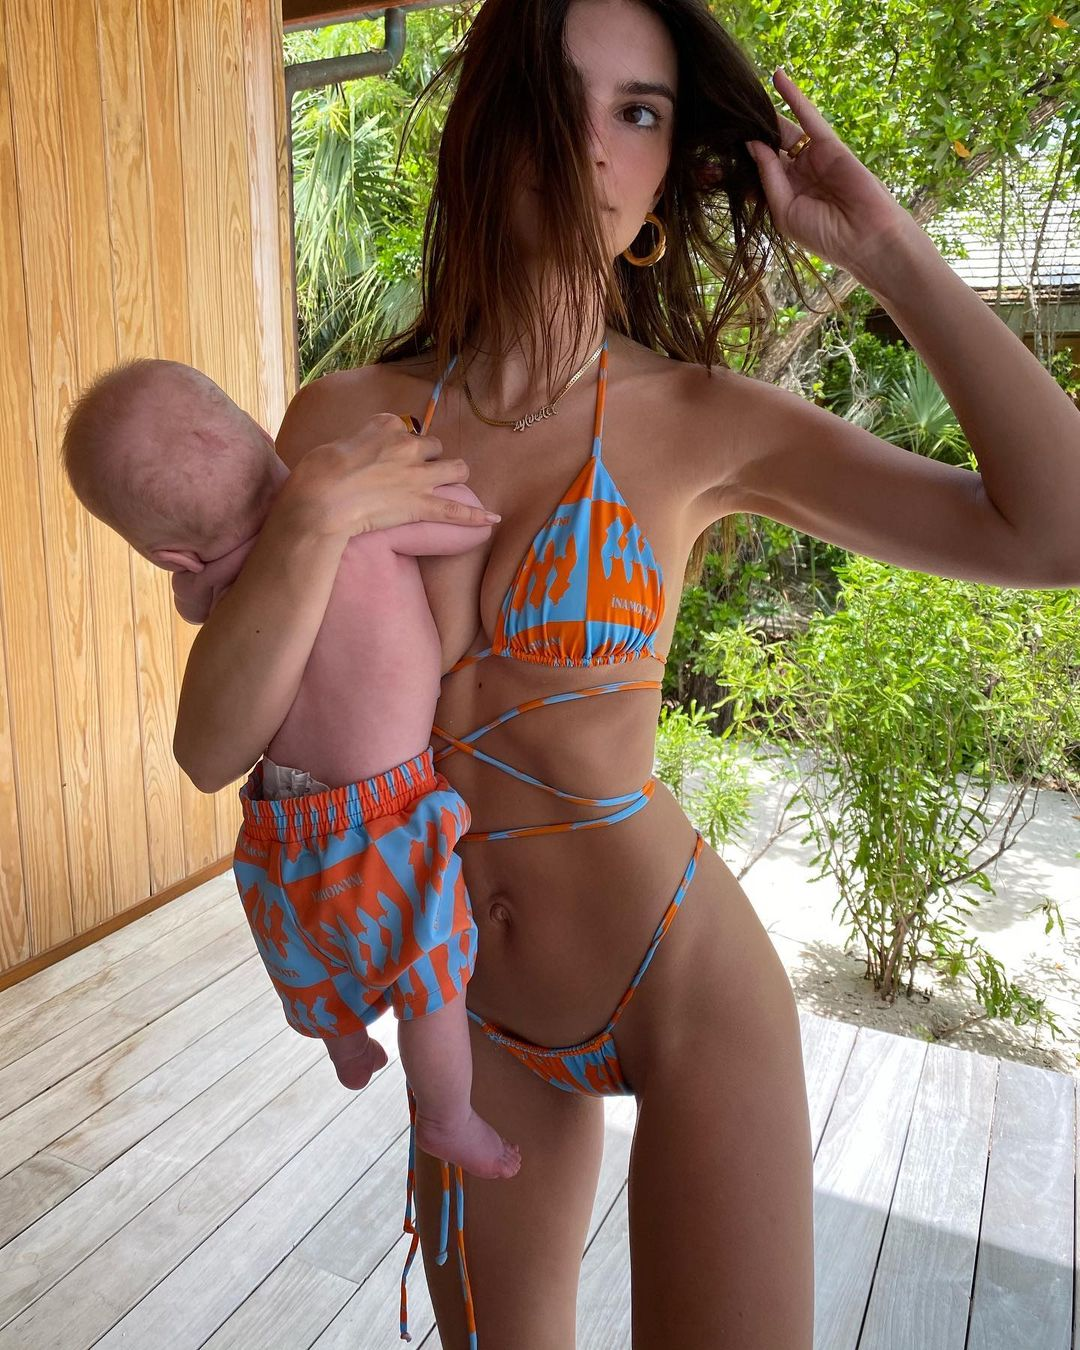 Emily Ratajkowski rocking a plunging bi color bikini top with tie back, a halter neck and two ties at the shoulder